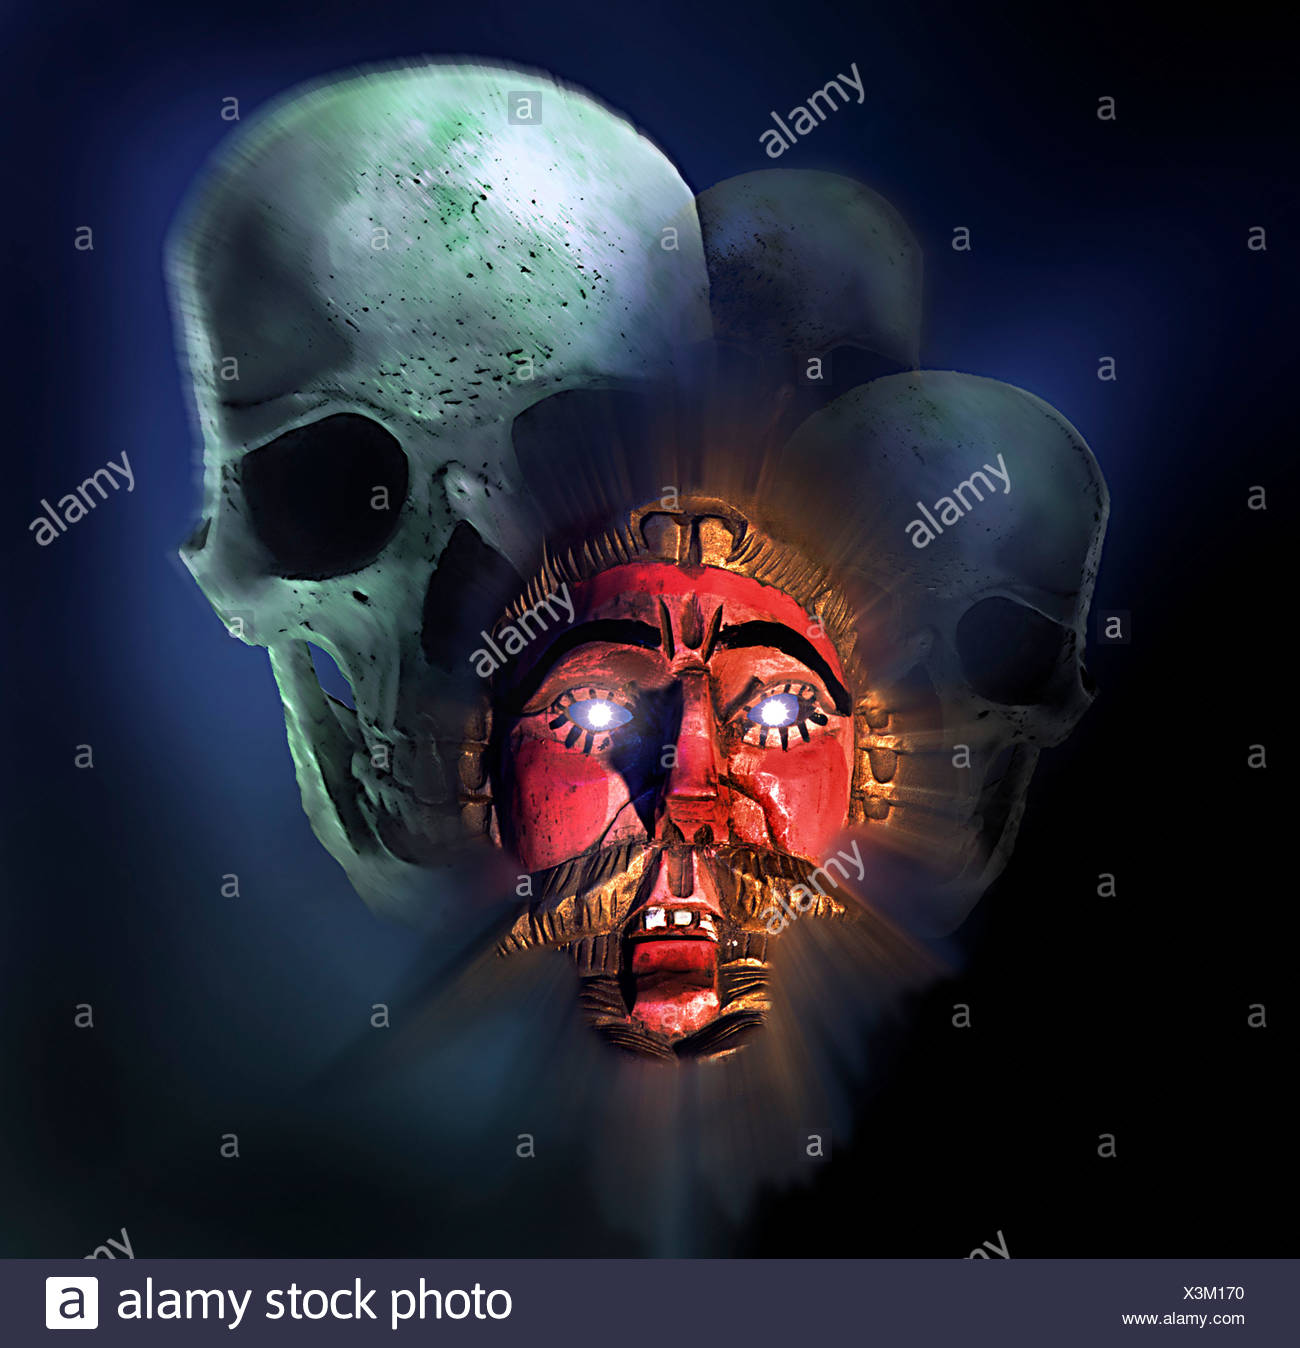 Mask from Guatemala (representing white conquerer) with skulls, symbolic photo for colonialism - Stock Image